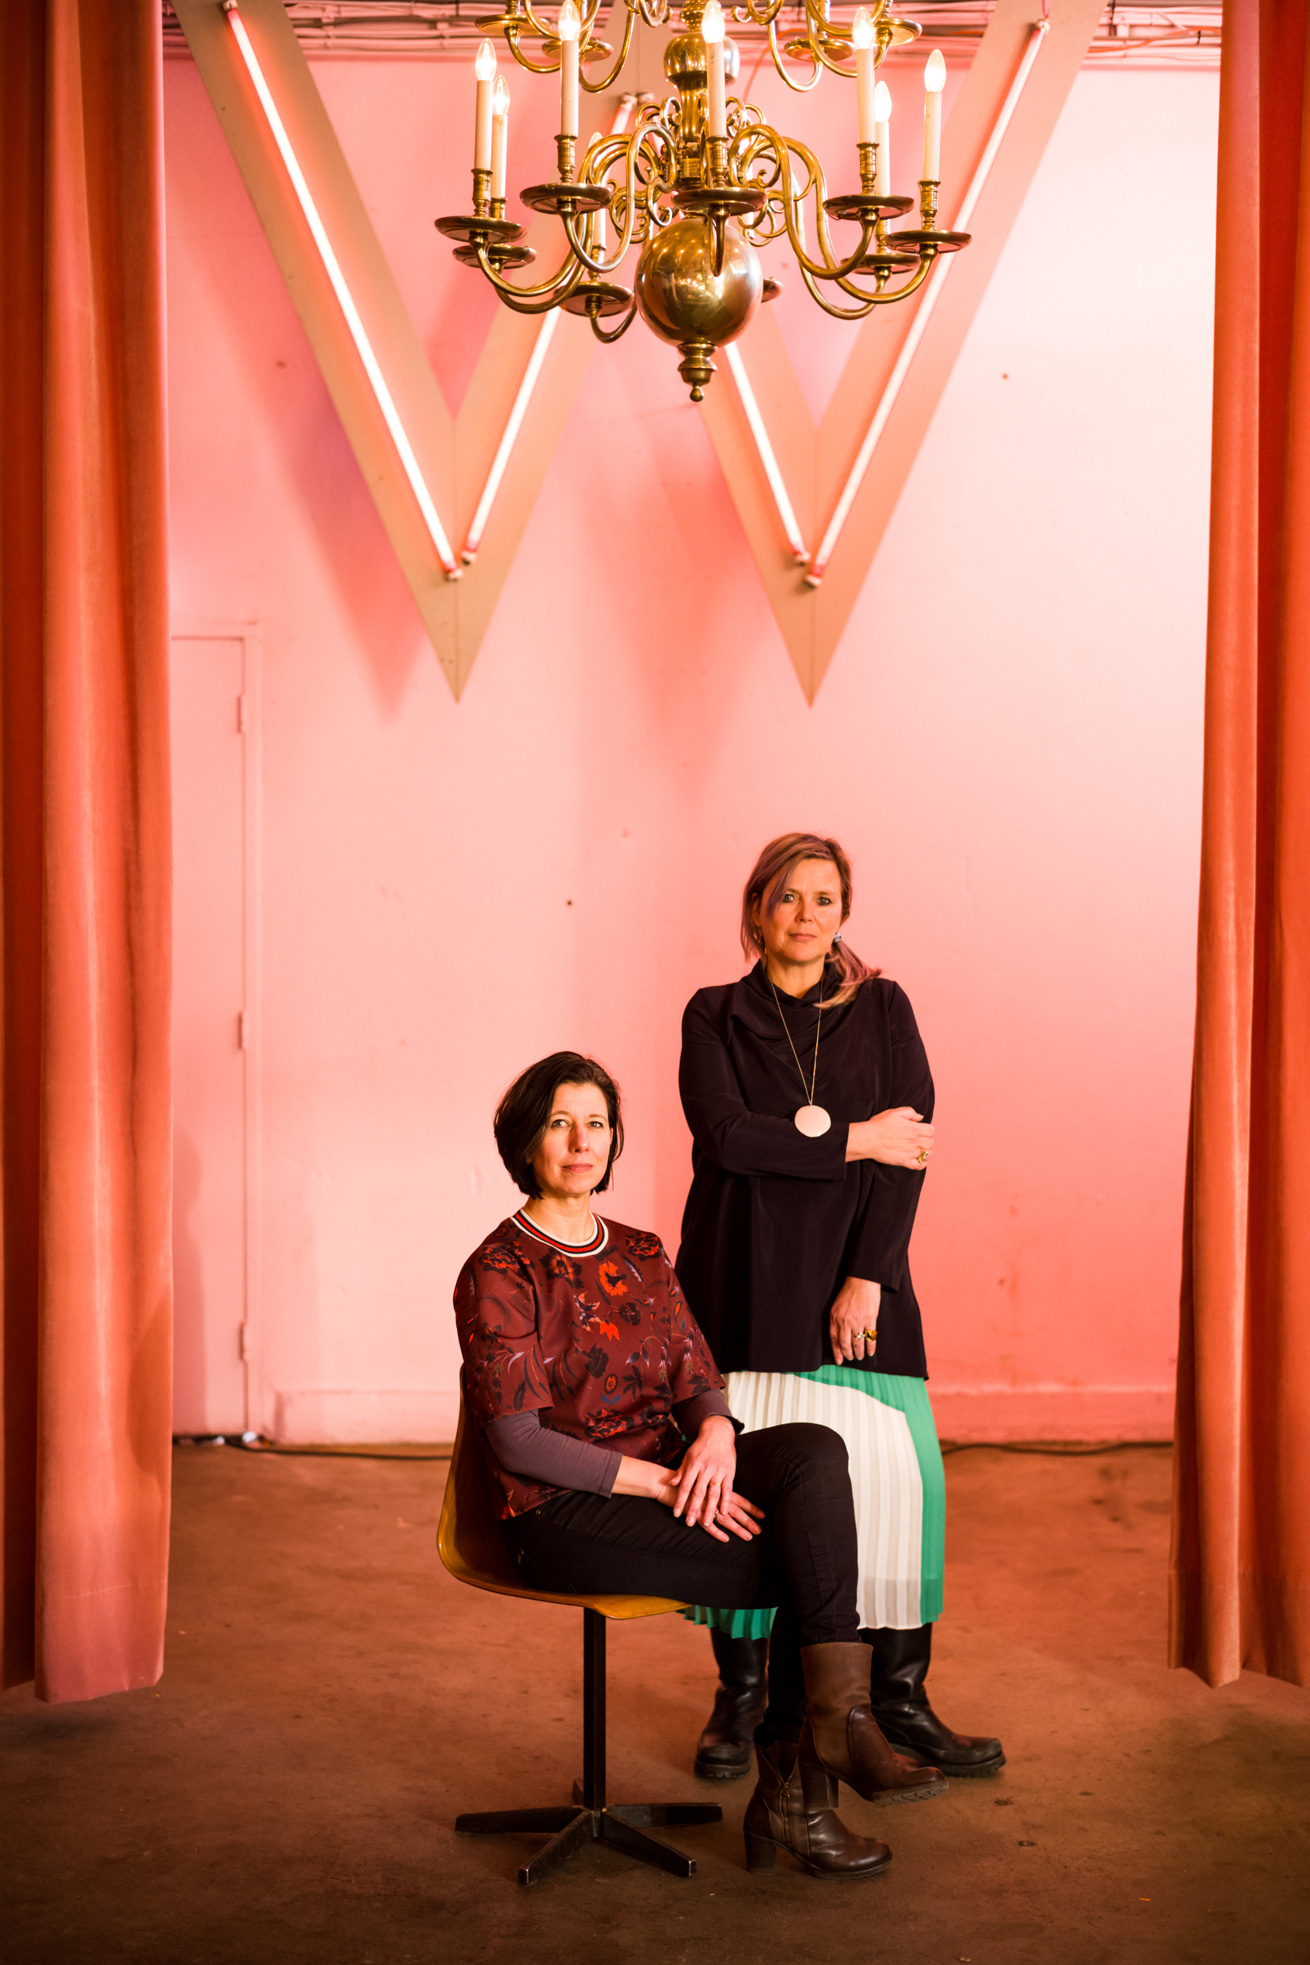 Simone Kramer & Petra Janssen. Photo by Boudewijn Bollmann